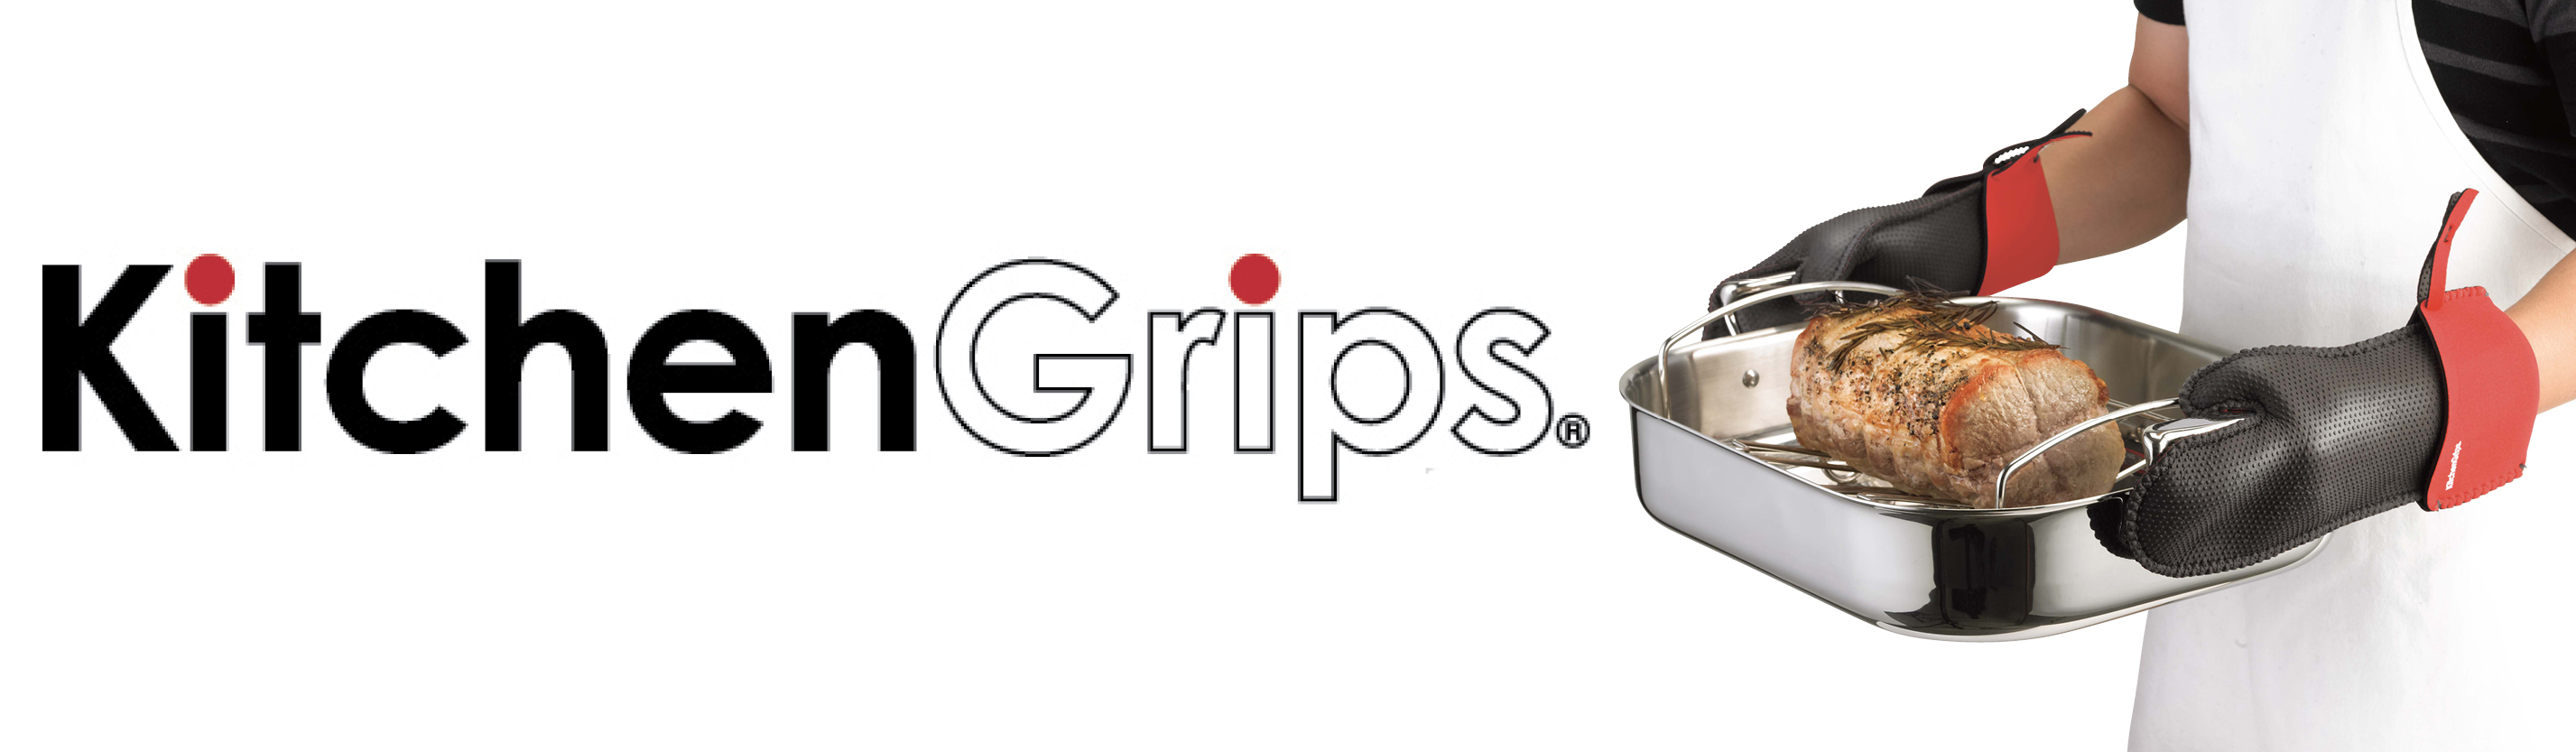 Kitchen grips